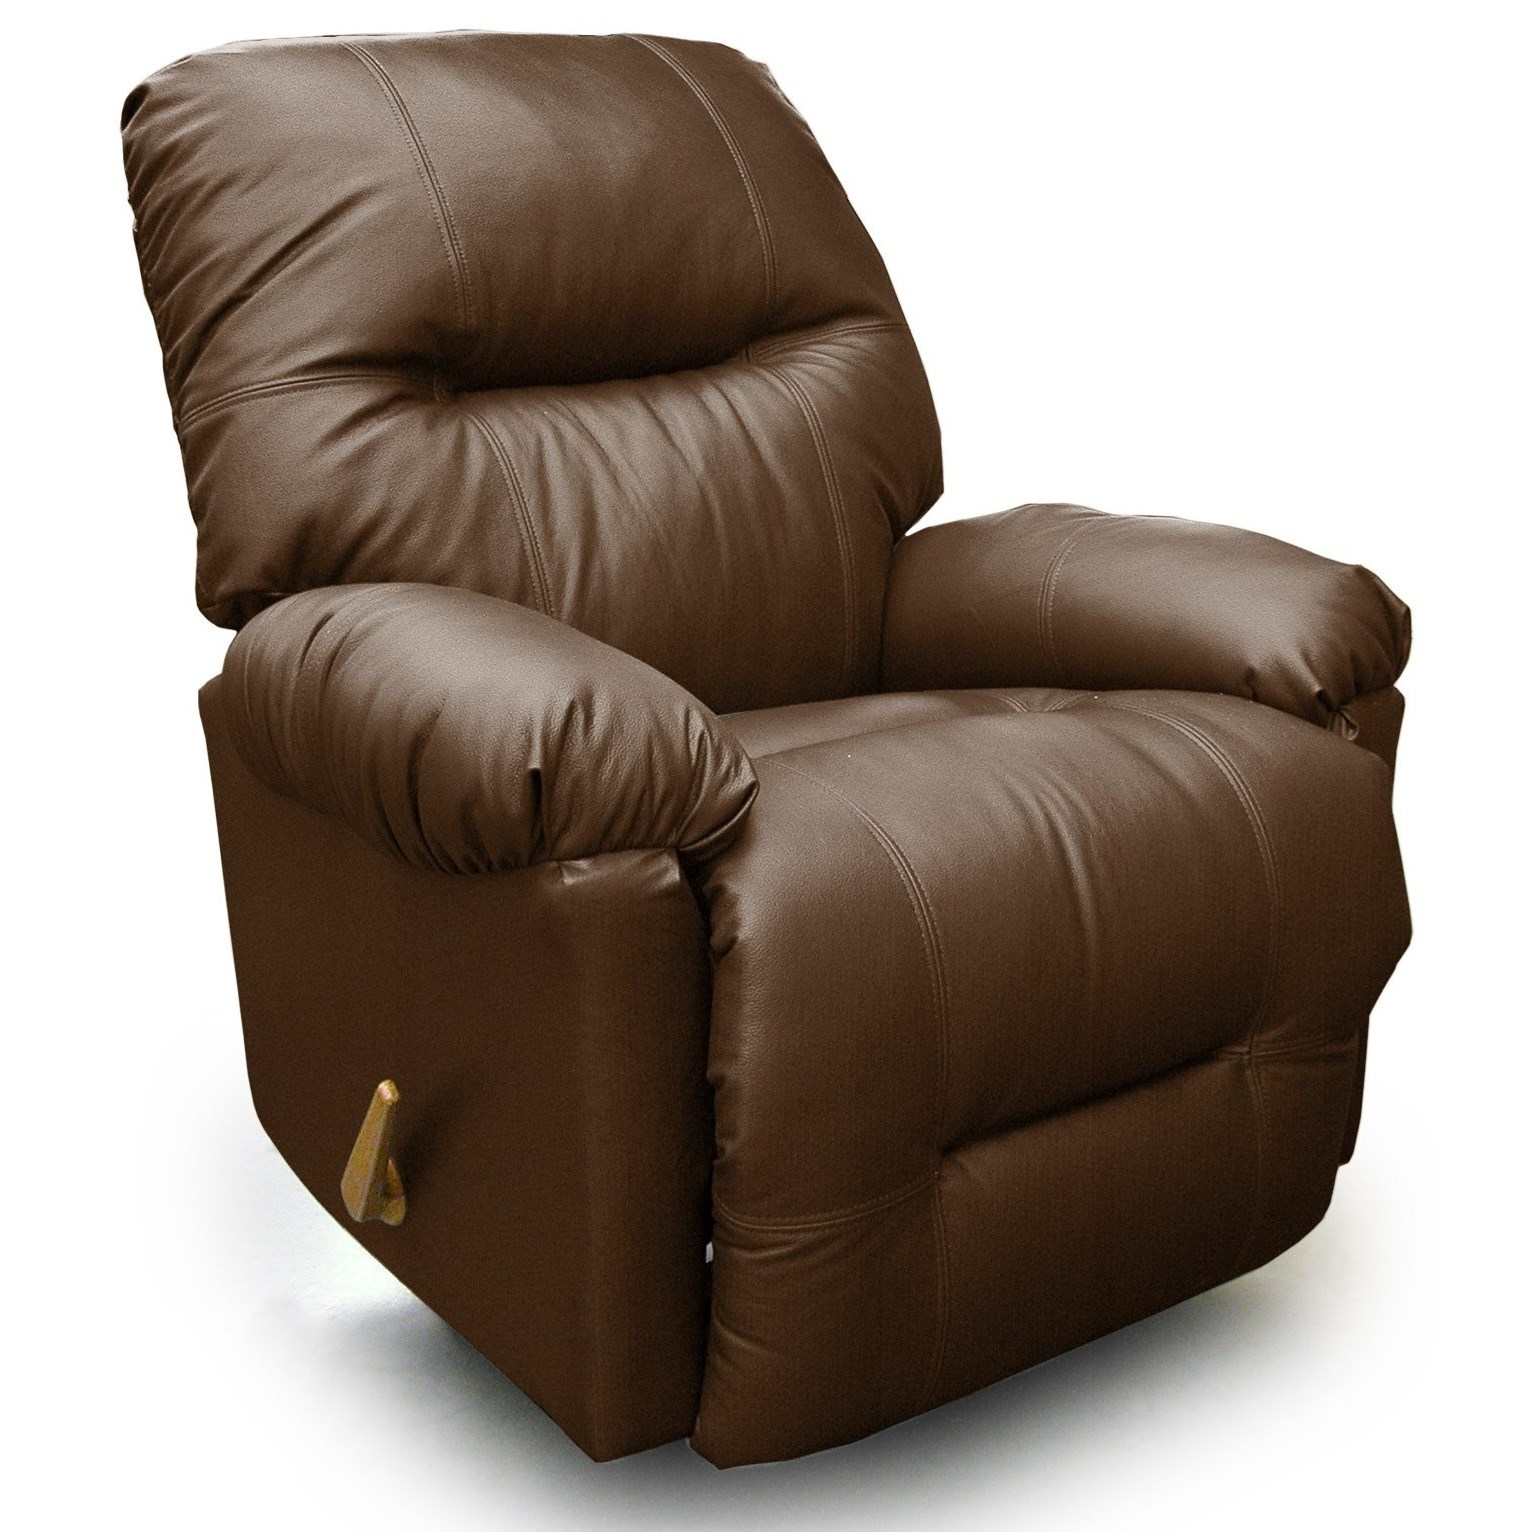 Petite Recliners Wynette Rocker Recliner by Best Home Furnishings at Mueller Furniture